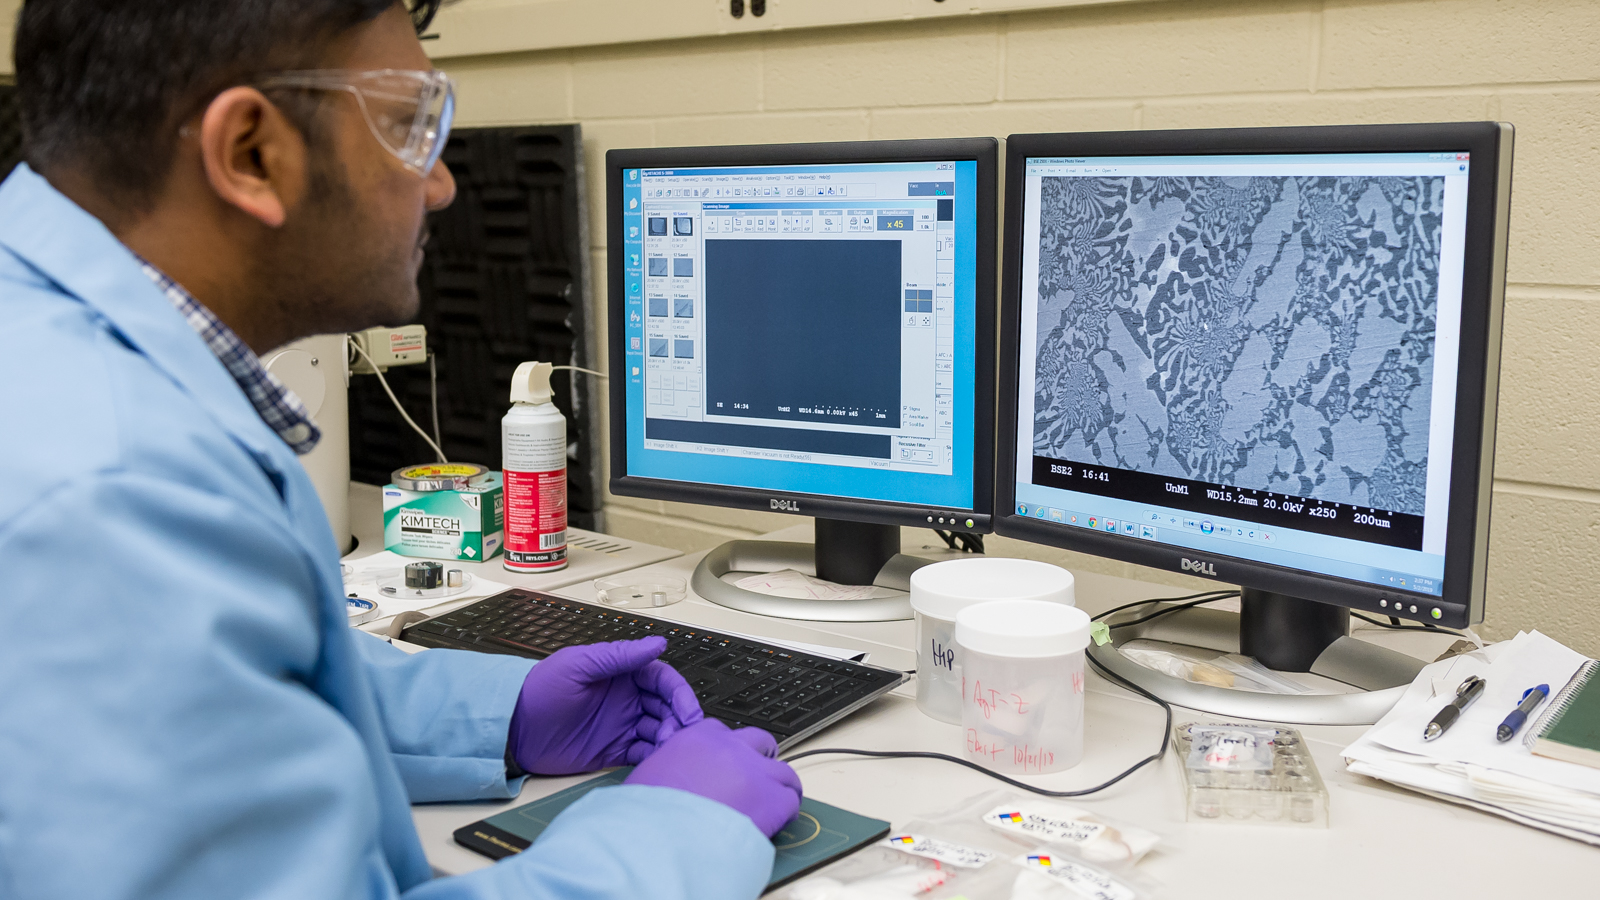 Photo of researcher looking at microscopy image on computer screen